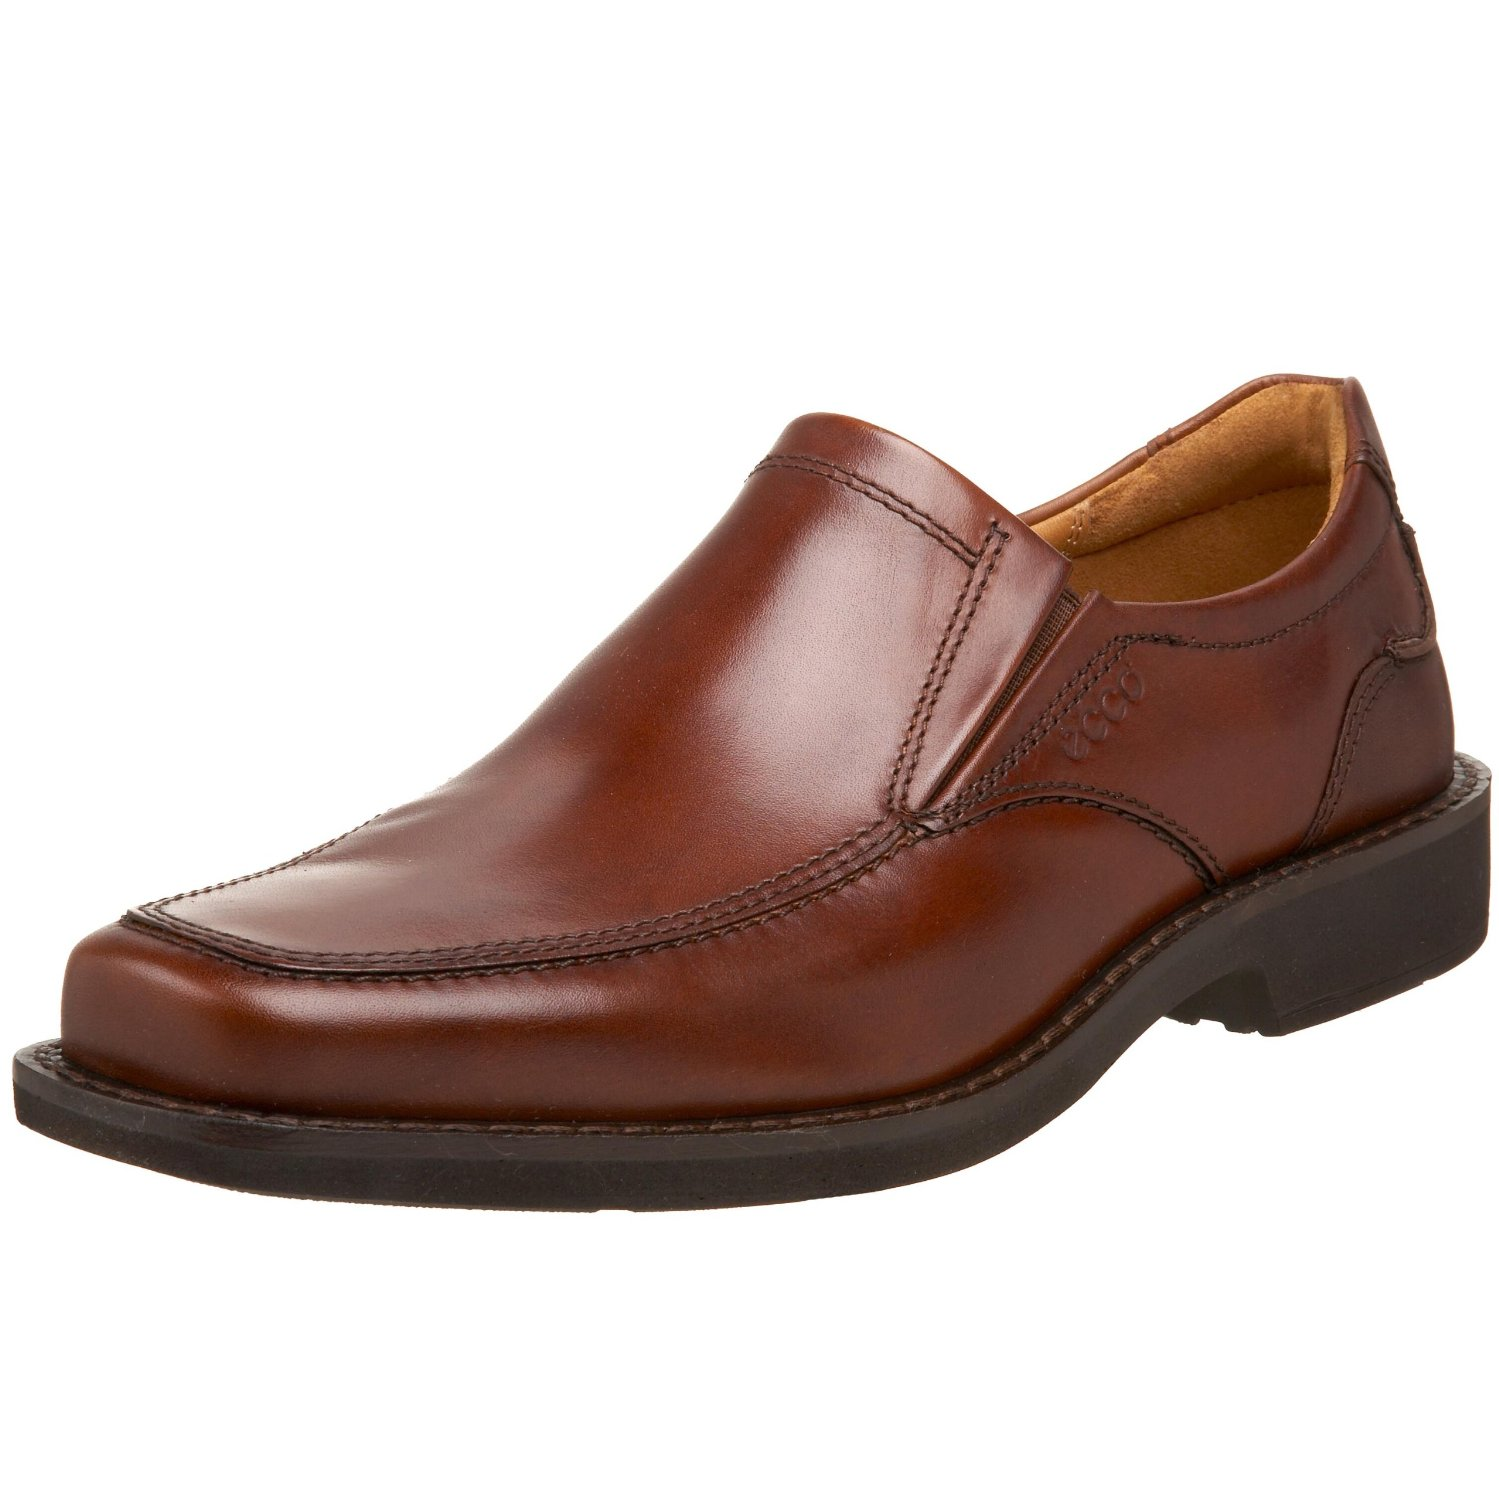 The Funky Monkey: ECCO USA: Stylish & Comfortable Men's Shoes